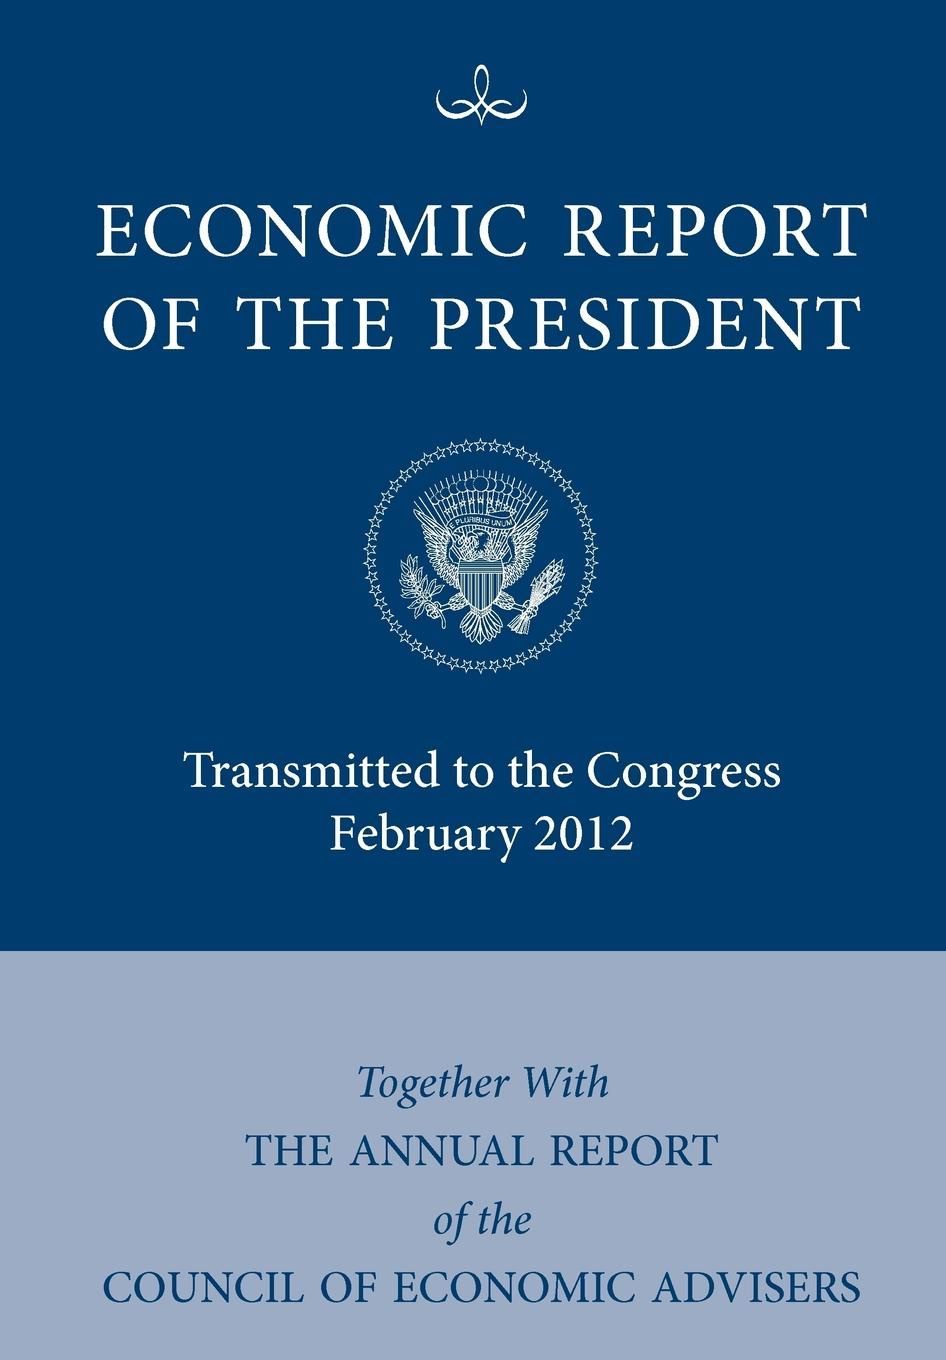 Executive Office of the President, Council of Economic Advisers Economic Report of the President, Transmitted to the Congress February 2012 Together with the Annual Report of the Council of Economic Advisors the president is missing